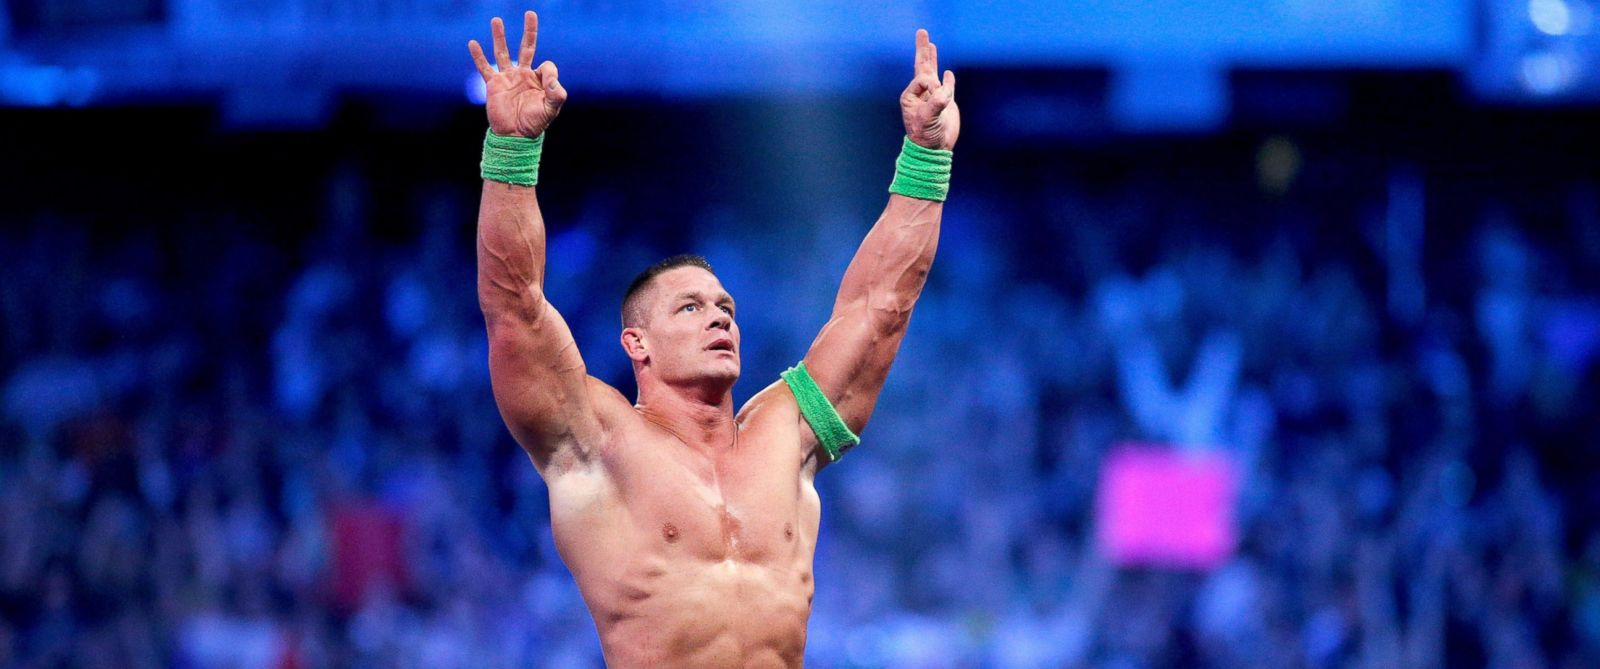 PHOTO: World-famous WWE wrestler John Cena celebrates his win during Wrestlemania XXX at the Mercedes-Benz Super Dome on April 6, 2014 in New Orleans.